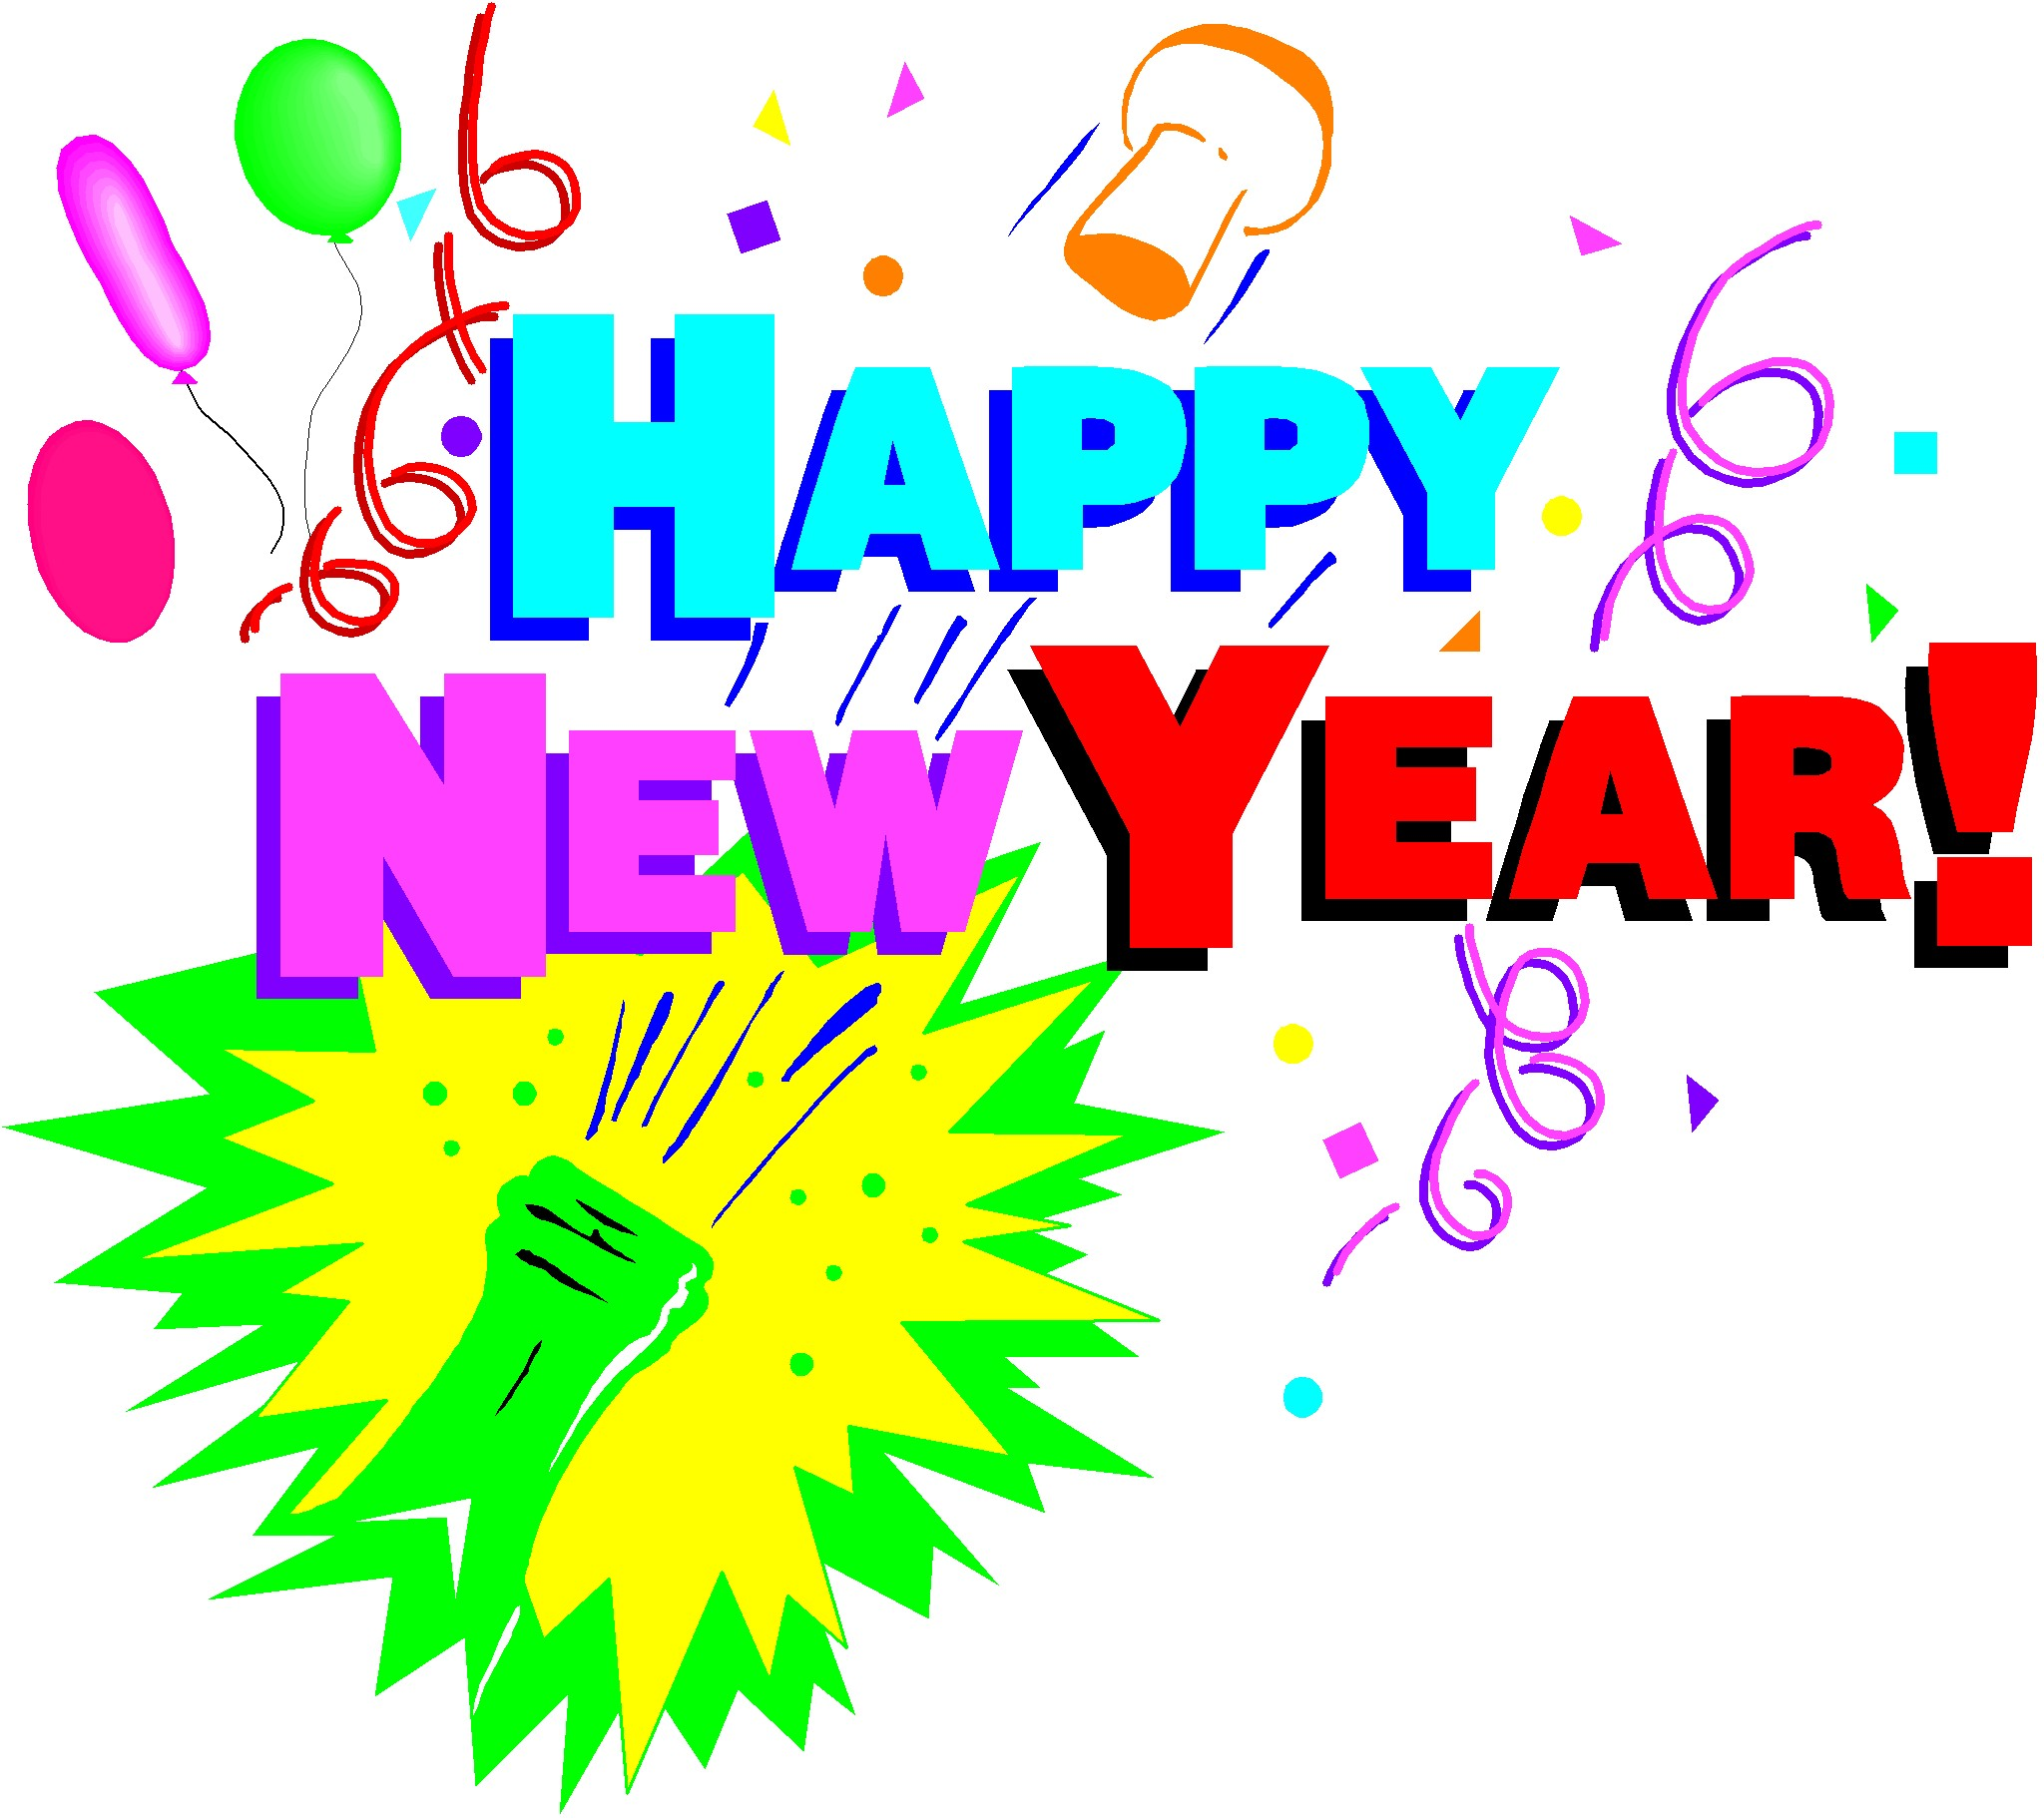 New Years Eve Party Clip Art - ClipArt Best